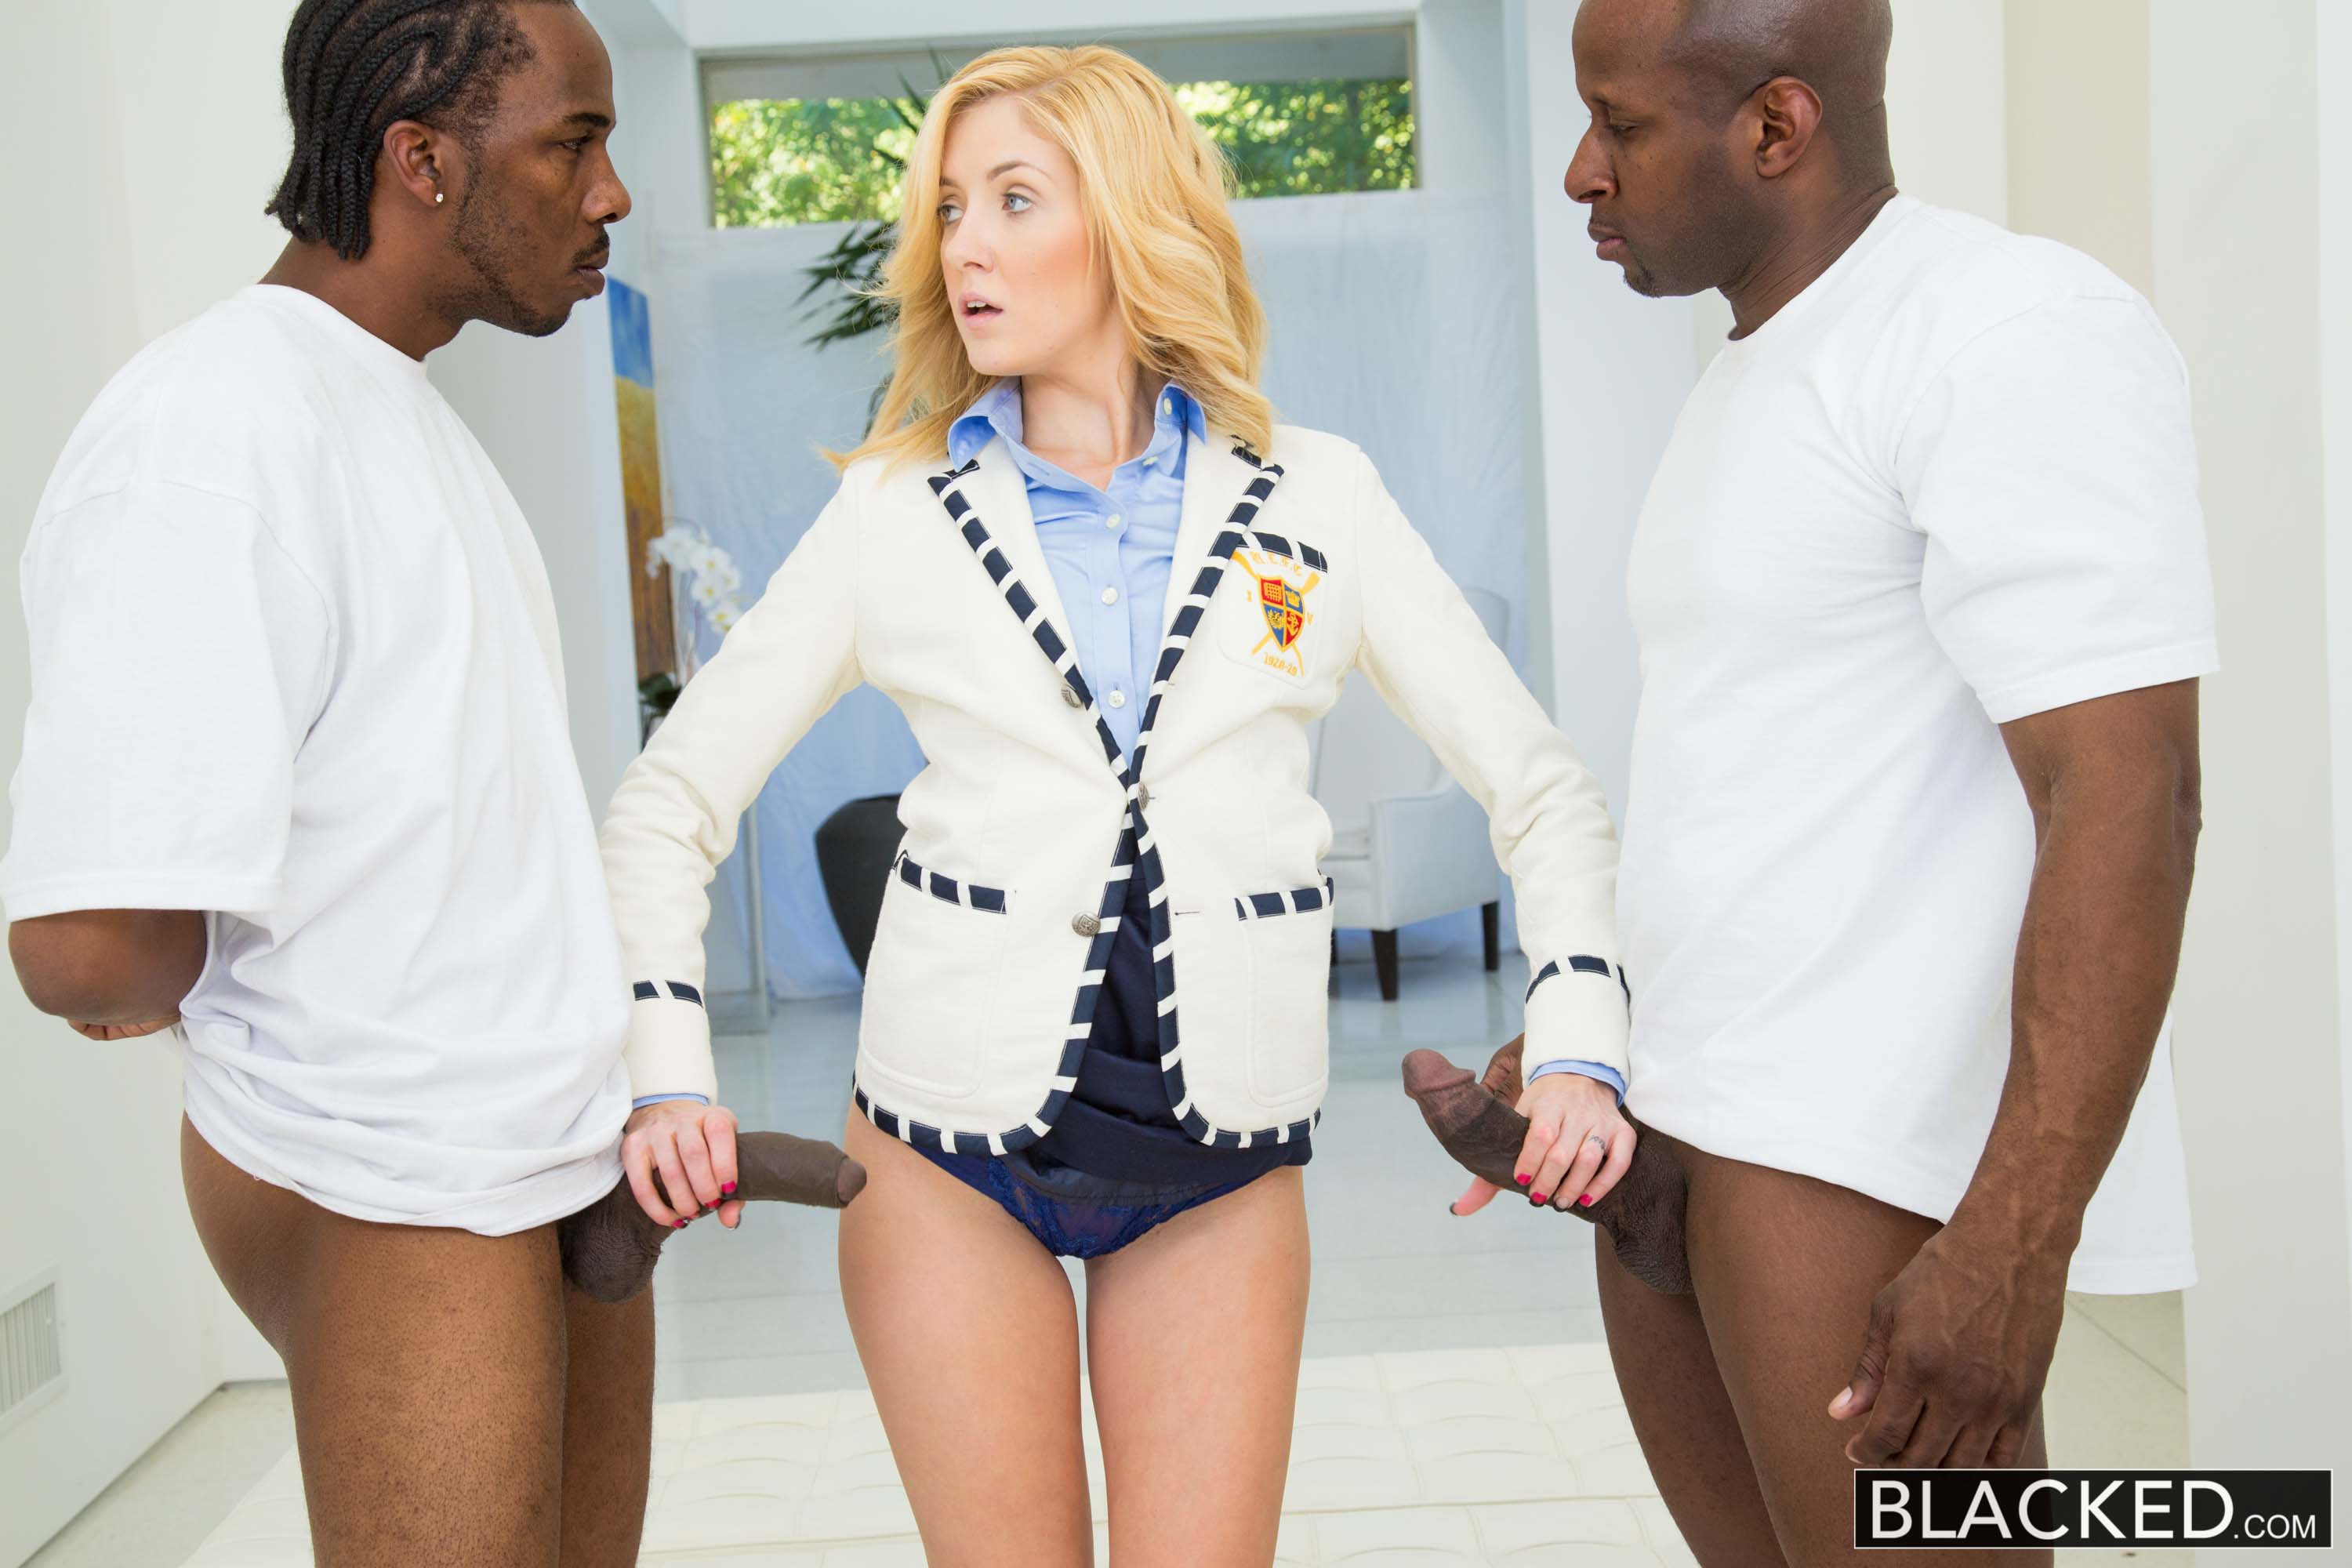 Emily Kae - 2 Big Black Dicks for Rich White Girl. | Picture (19)